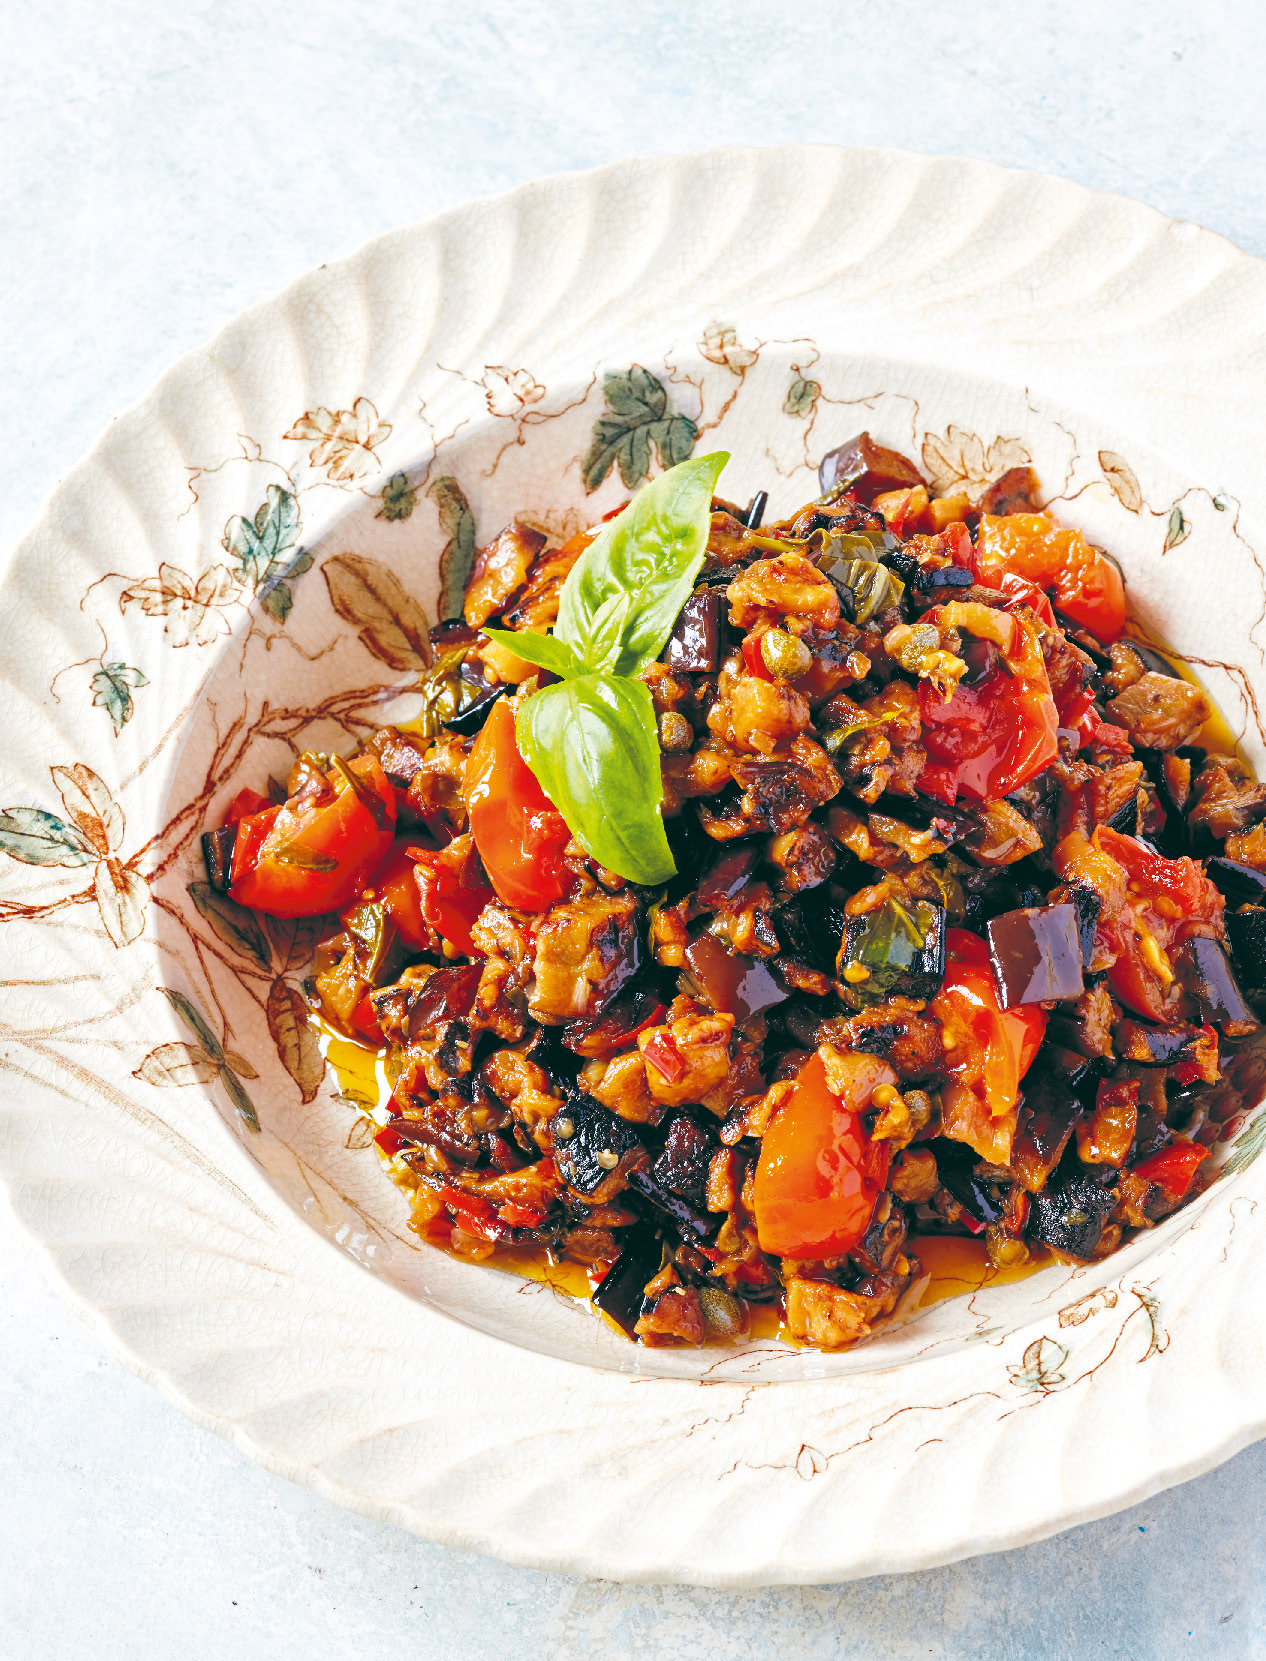 Sweet and sour eggplant caponata